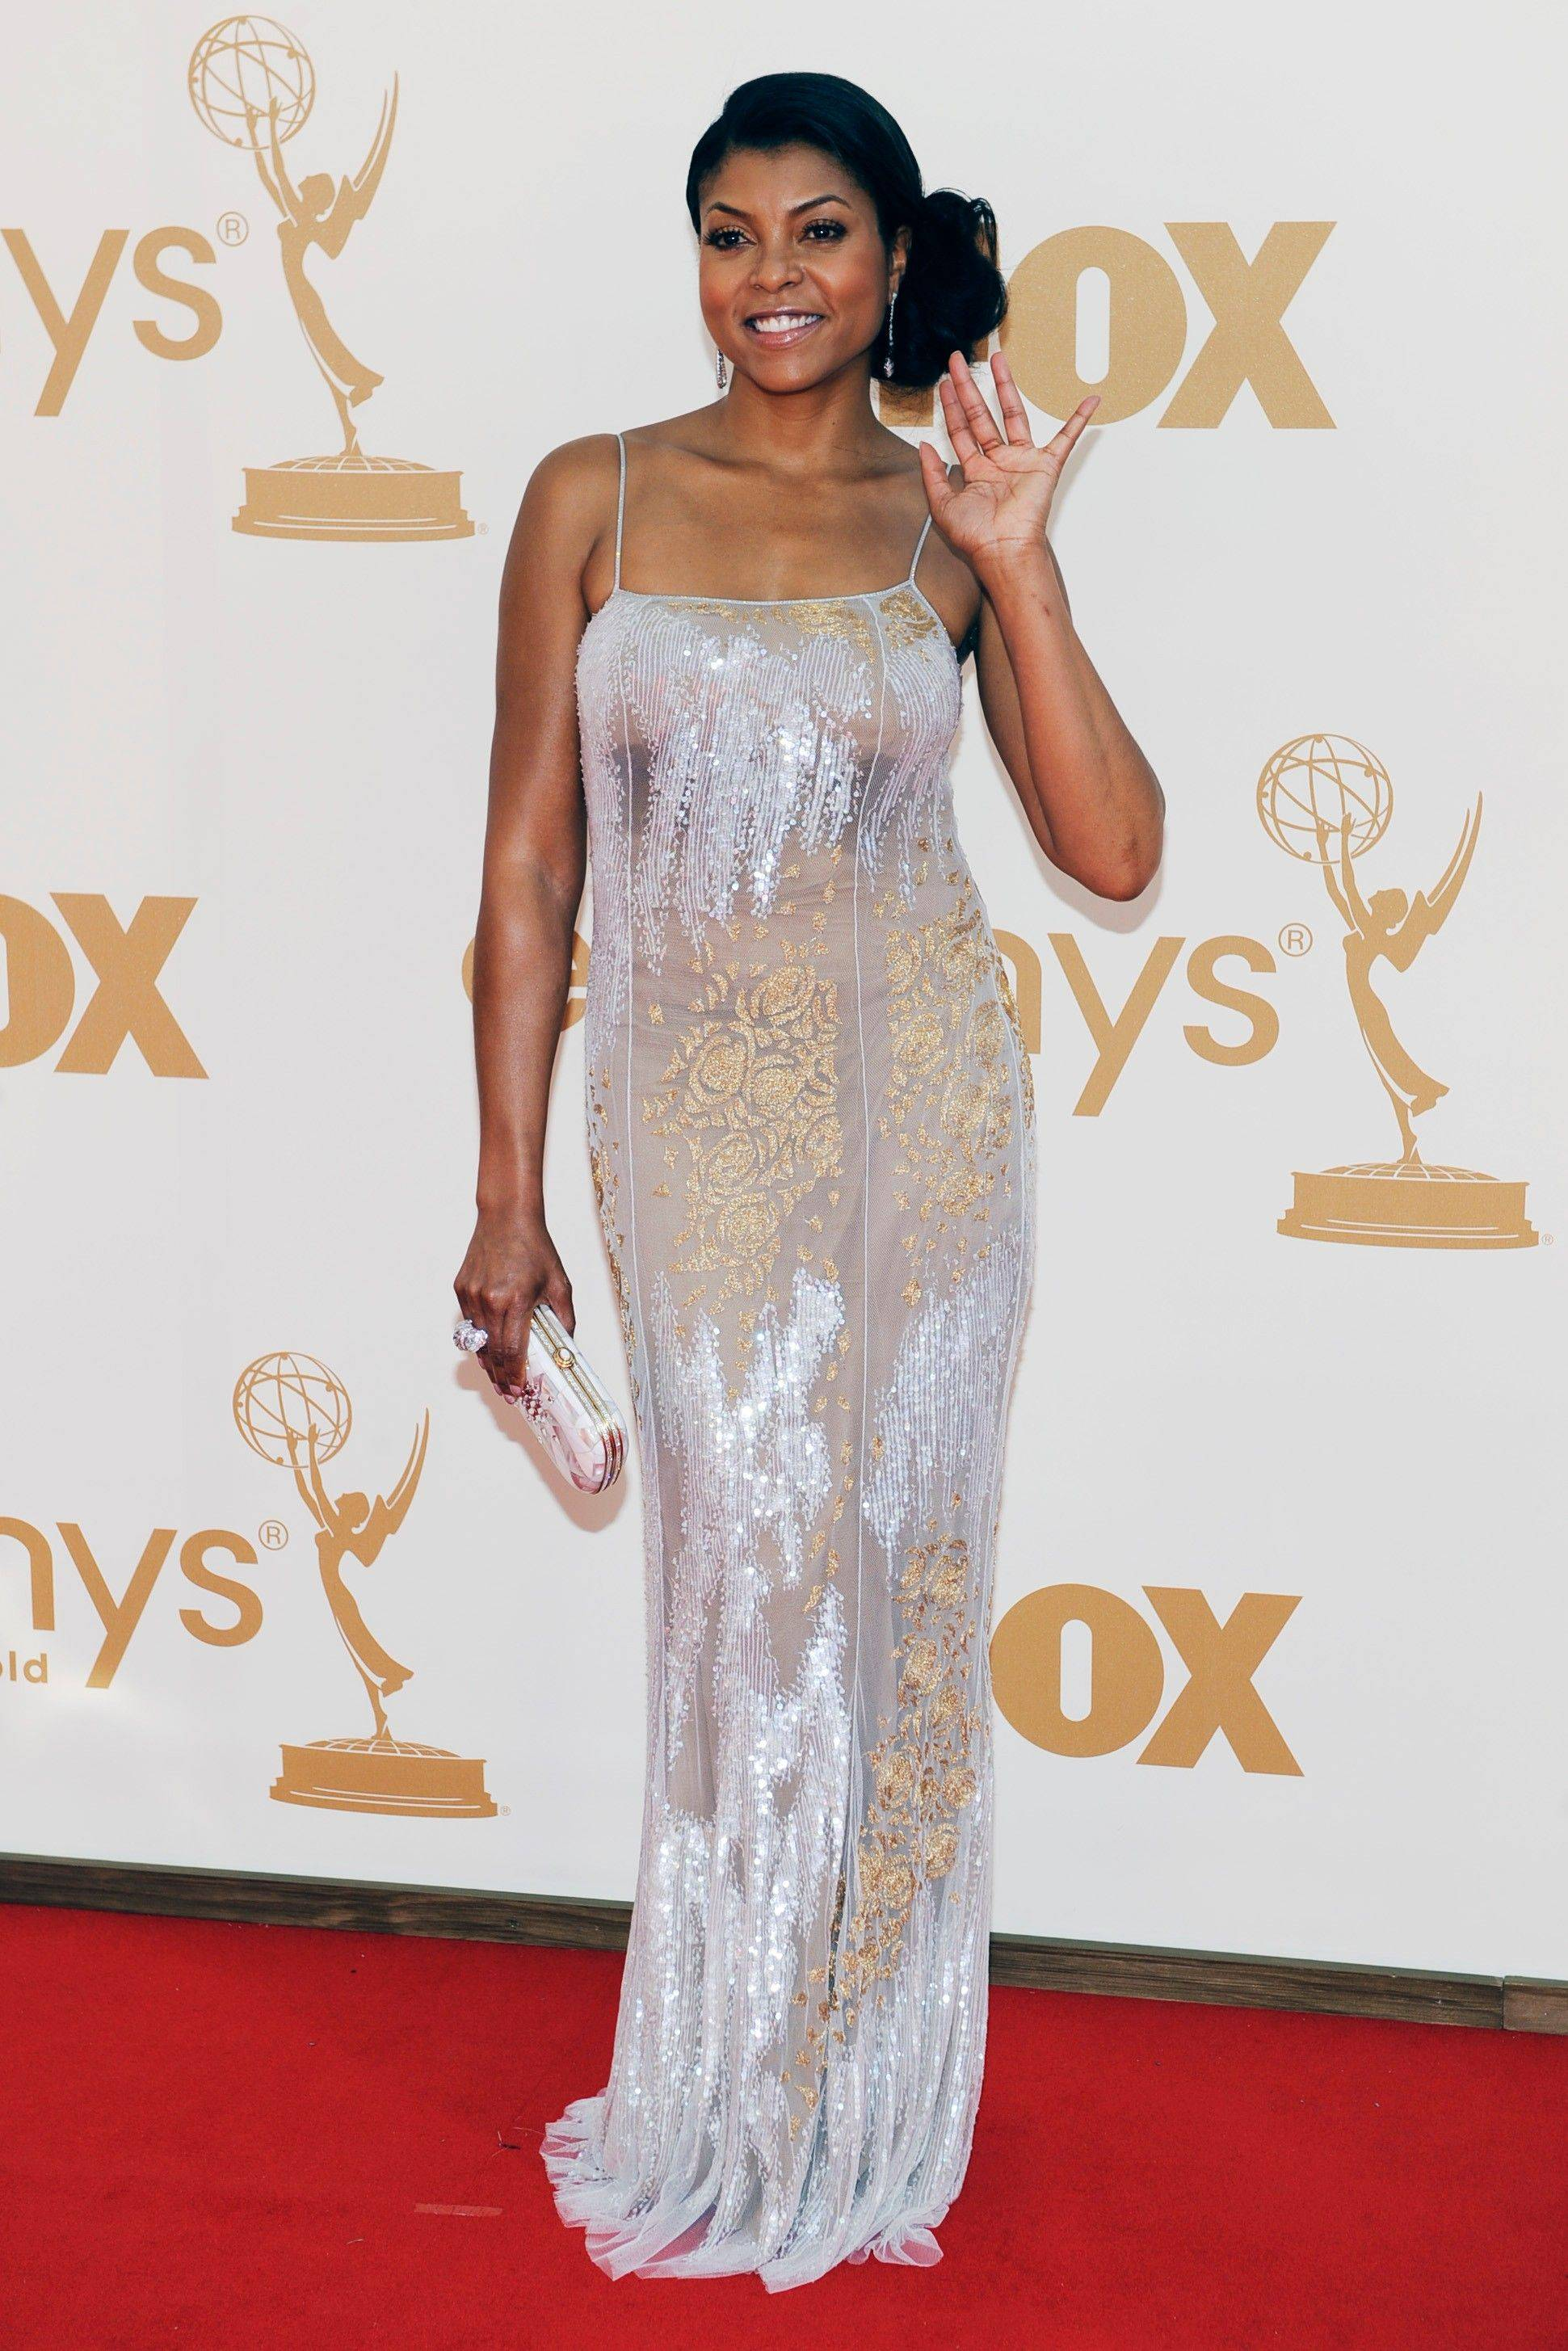 The usually best dressed Taraji P. Henson is overwhelmed by this ill fitting gown.